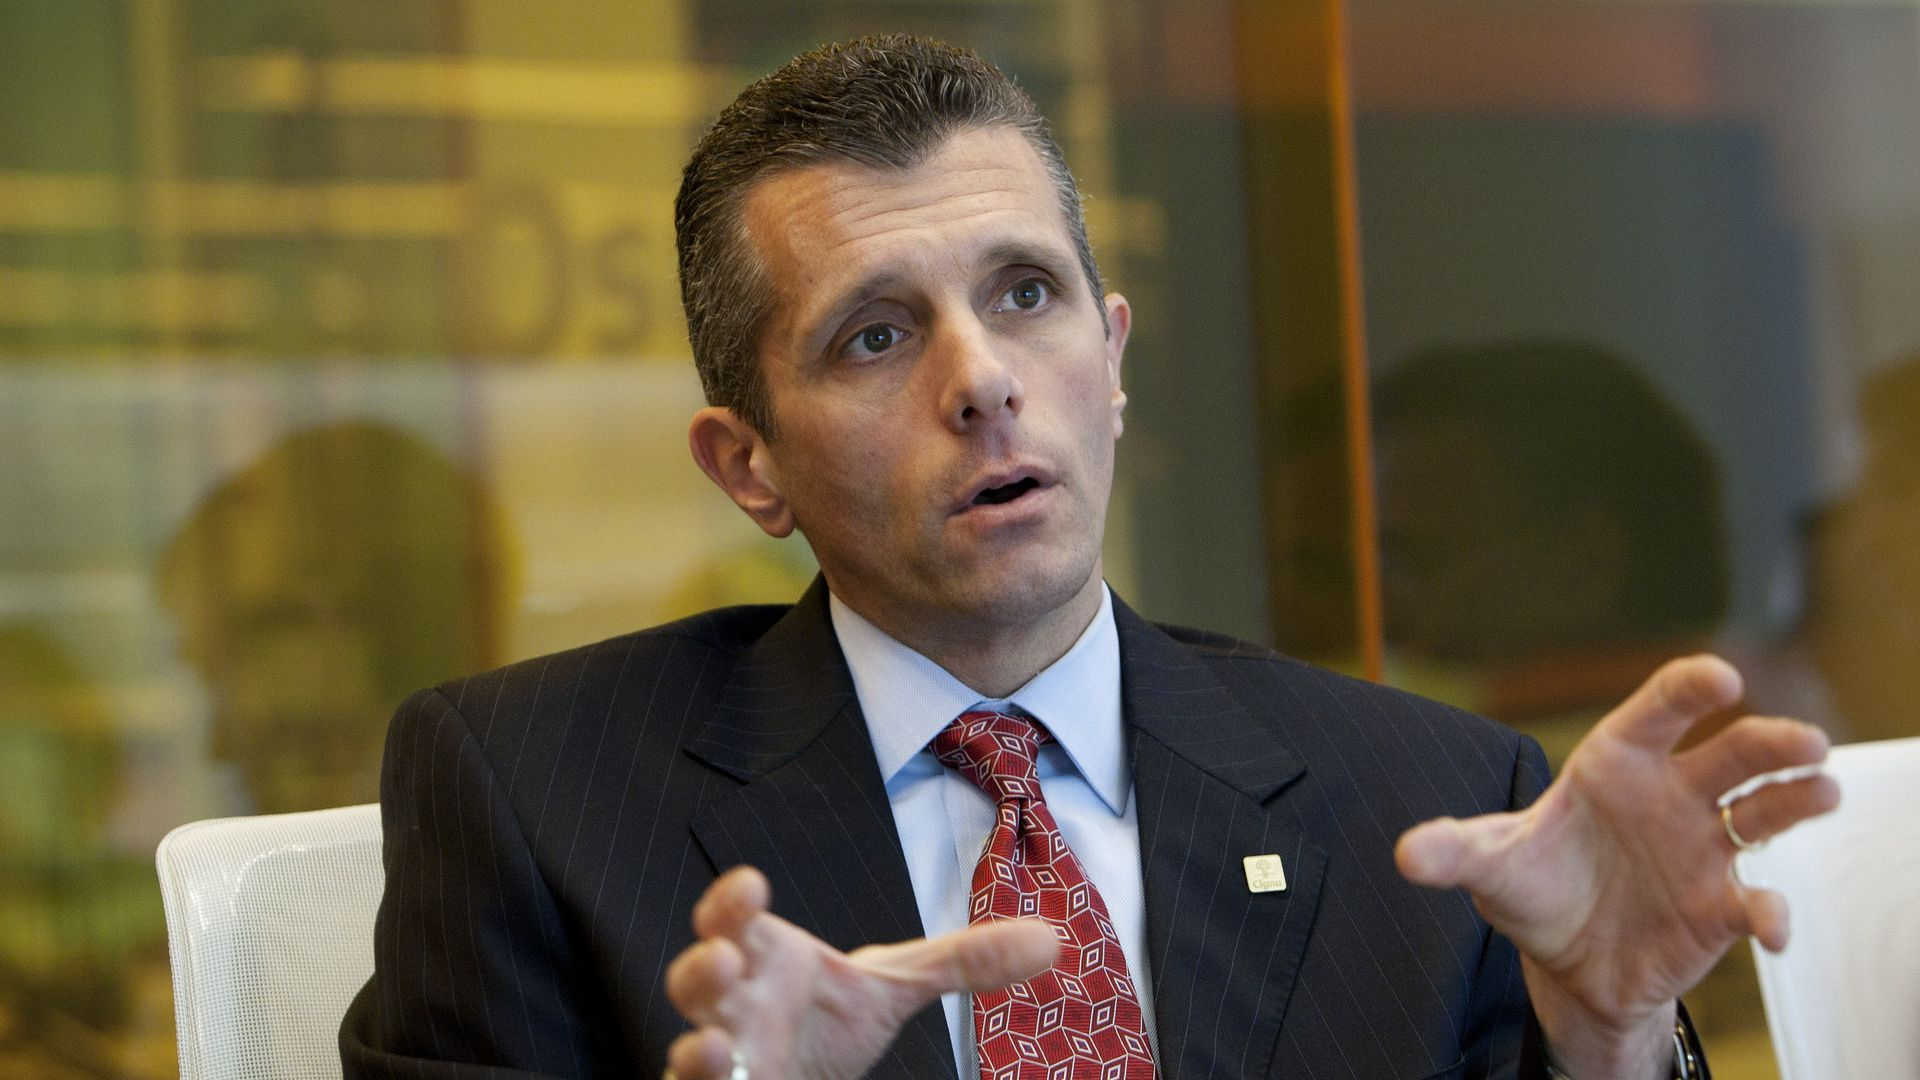 Cigna CEO David Cordani talks in a board room.